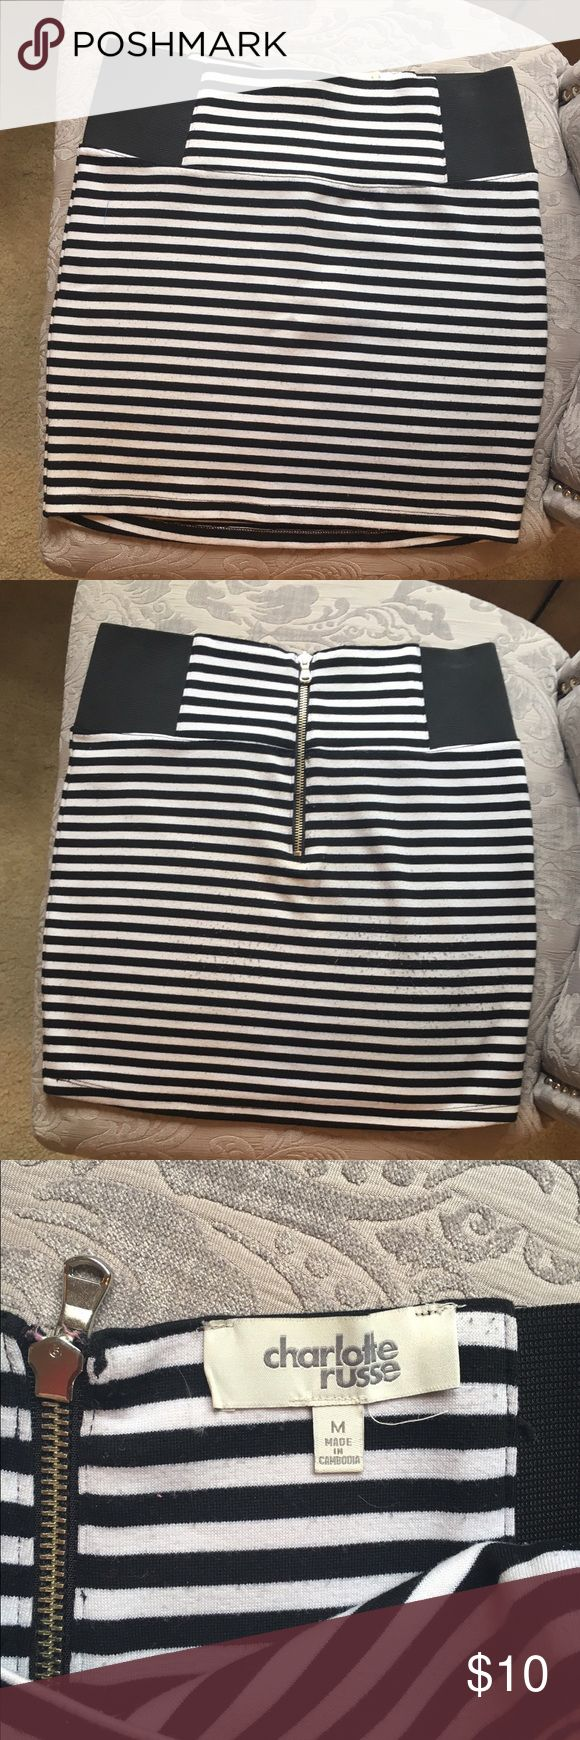 Striped Bandeau Skirt This is super cute and comfortable bandeau skirt perfect for a night out with your girls! It has been well loved and has some pilling on the backside. Charlotte Russe Skirts Mini